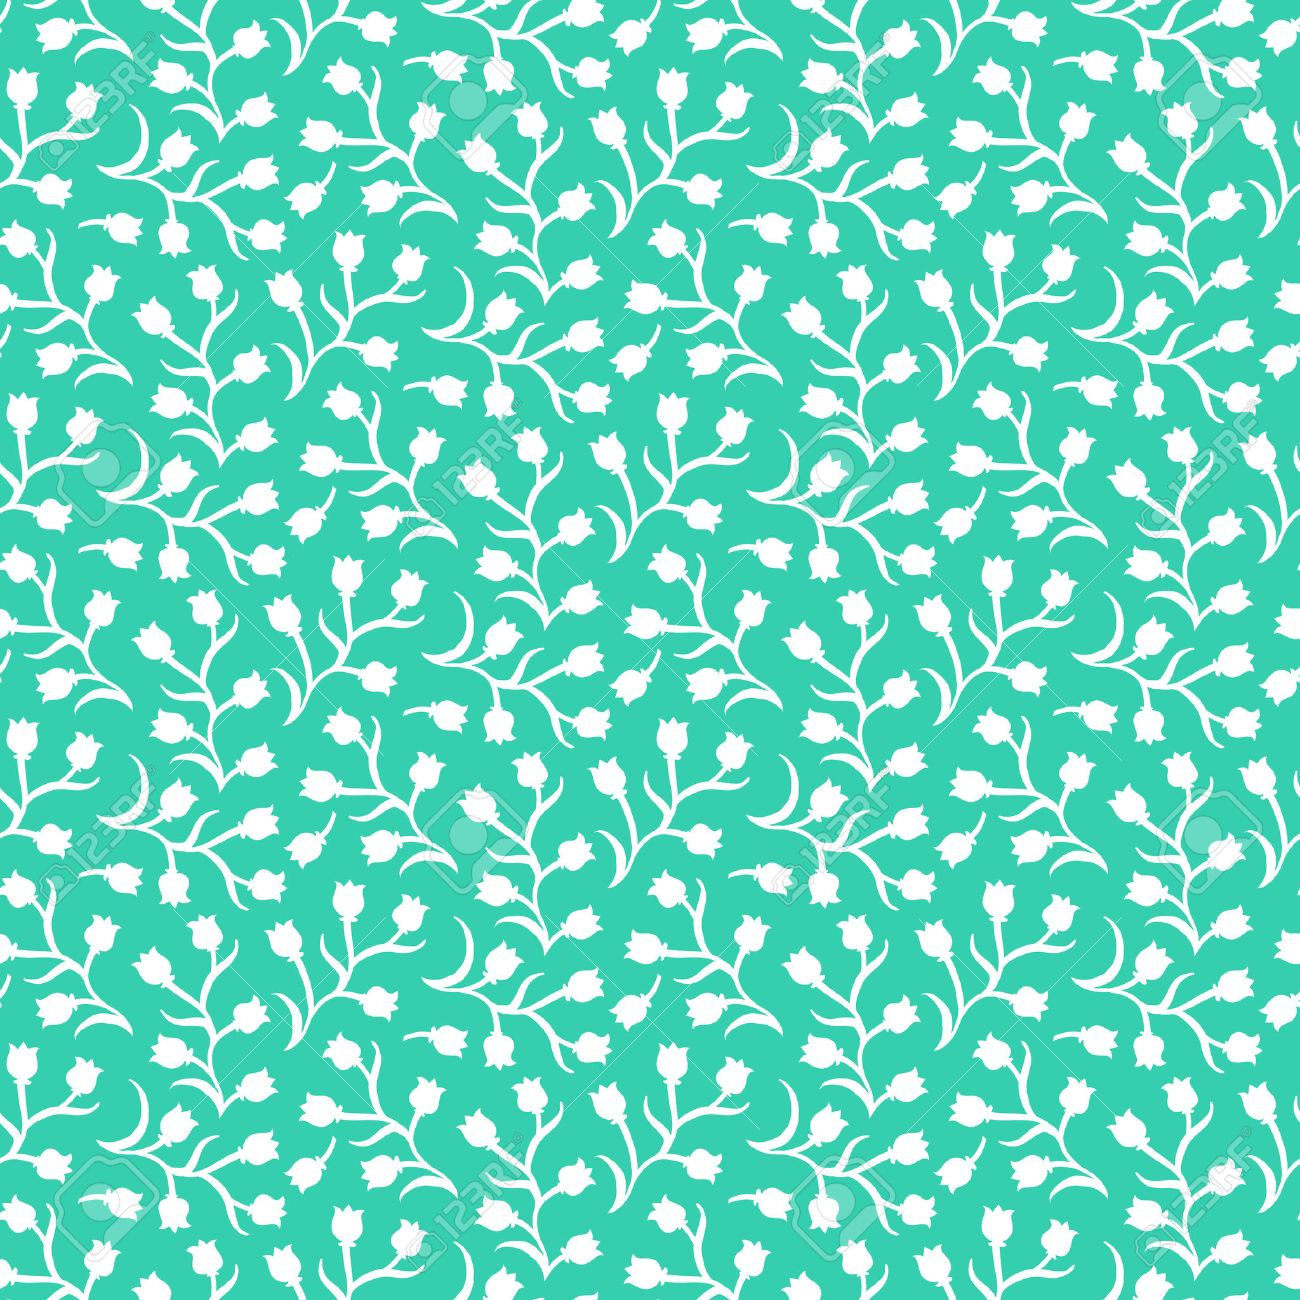 Ditsy Floral Pattern With Small White Tulips On Aqua Green